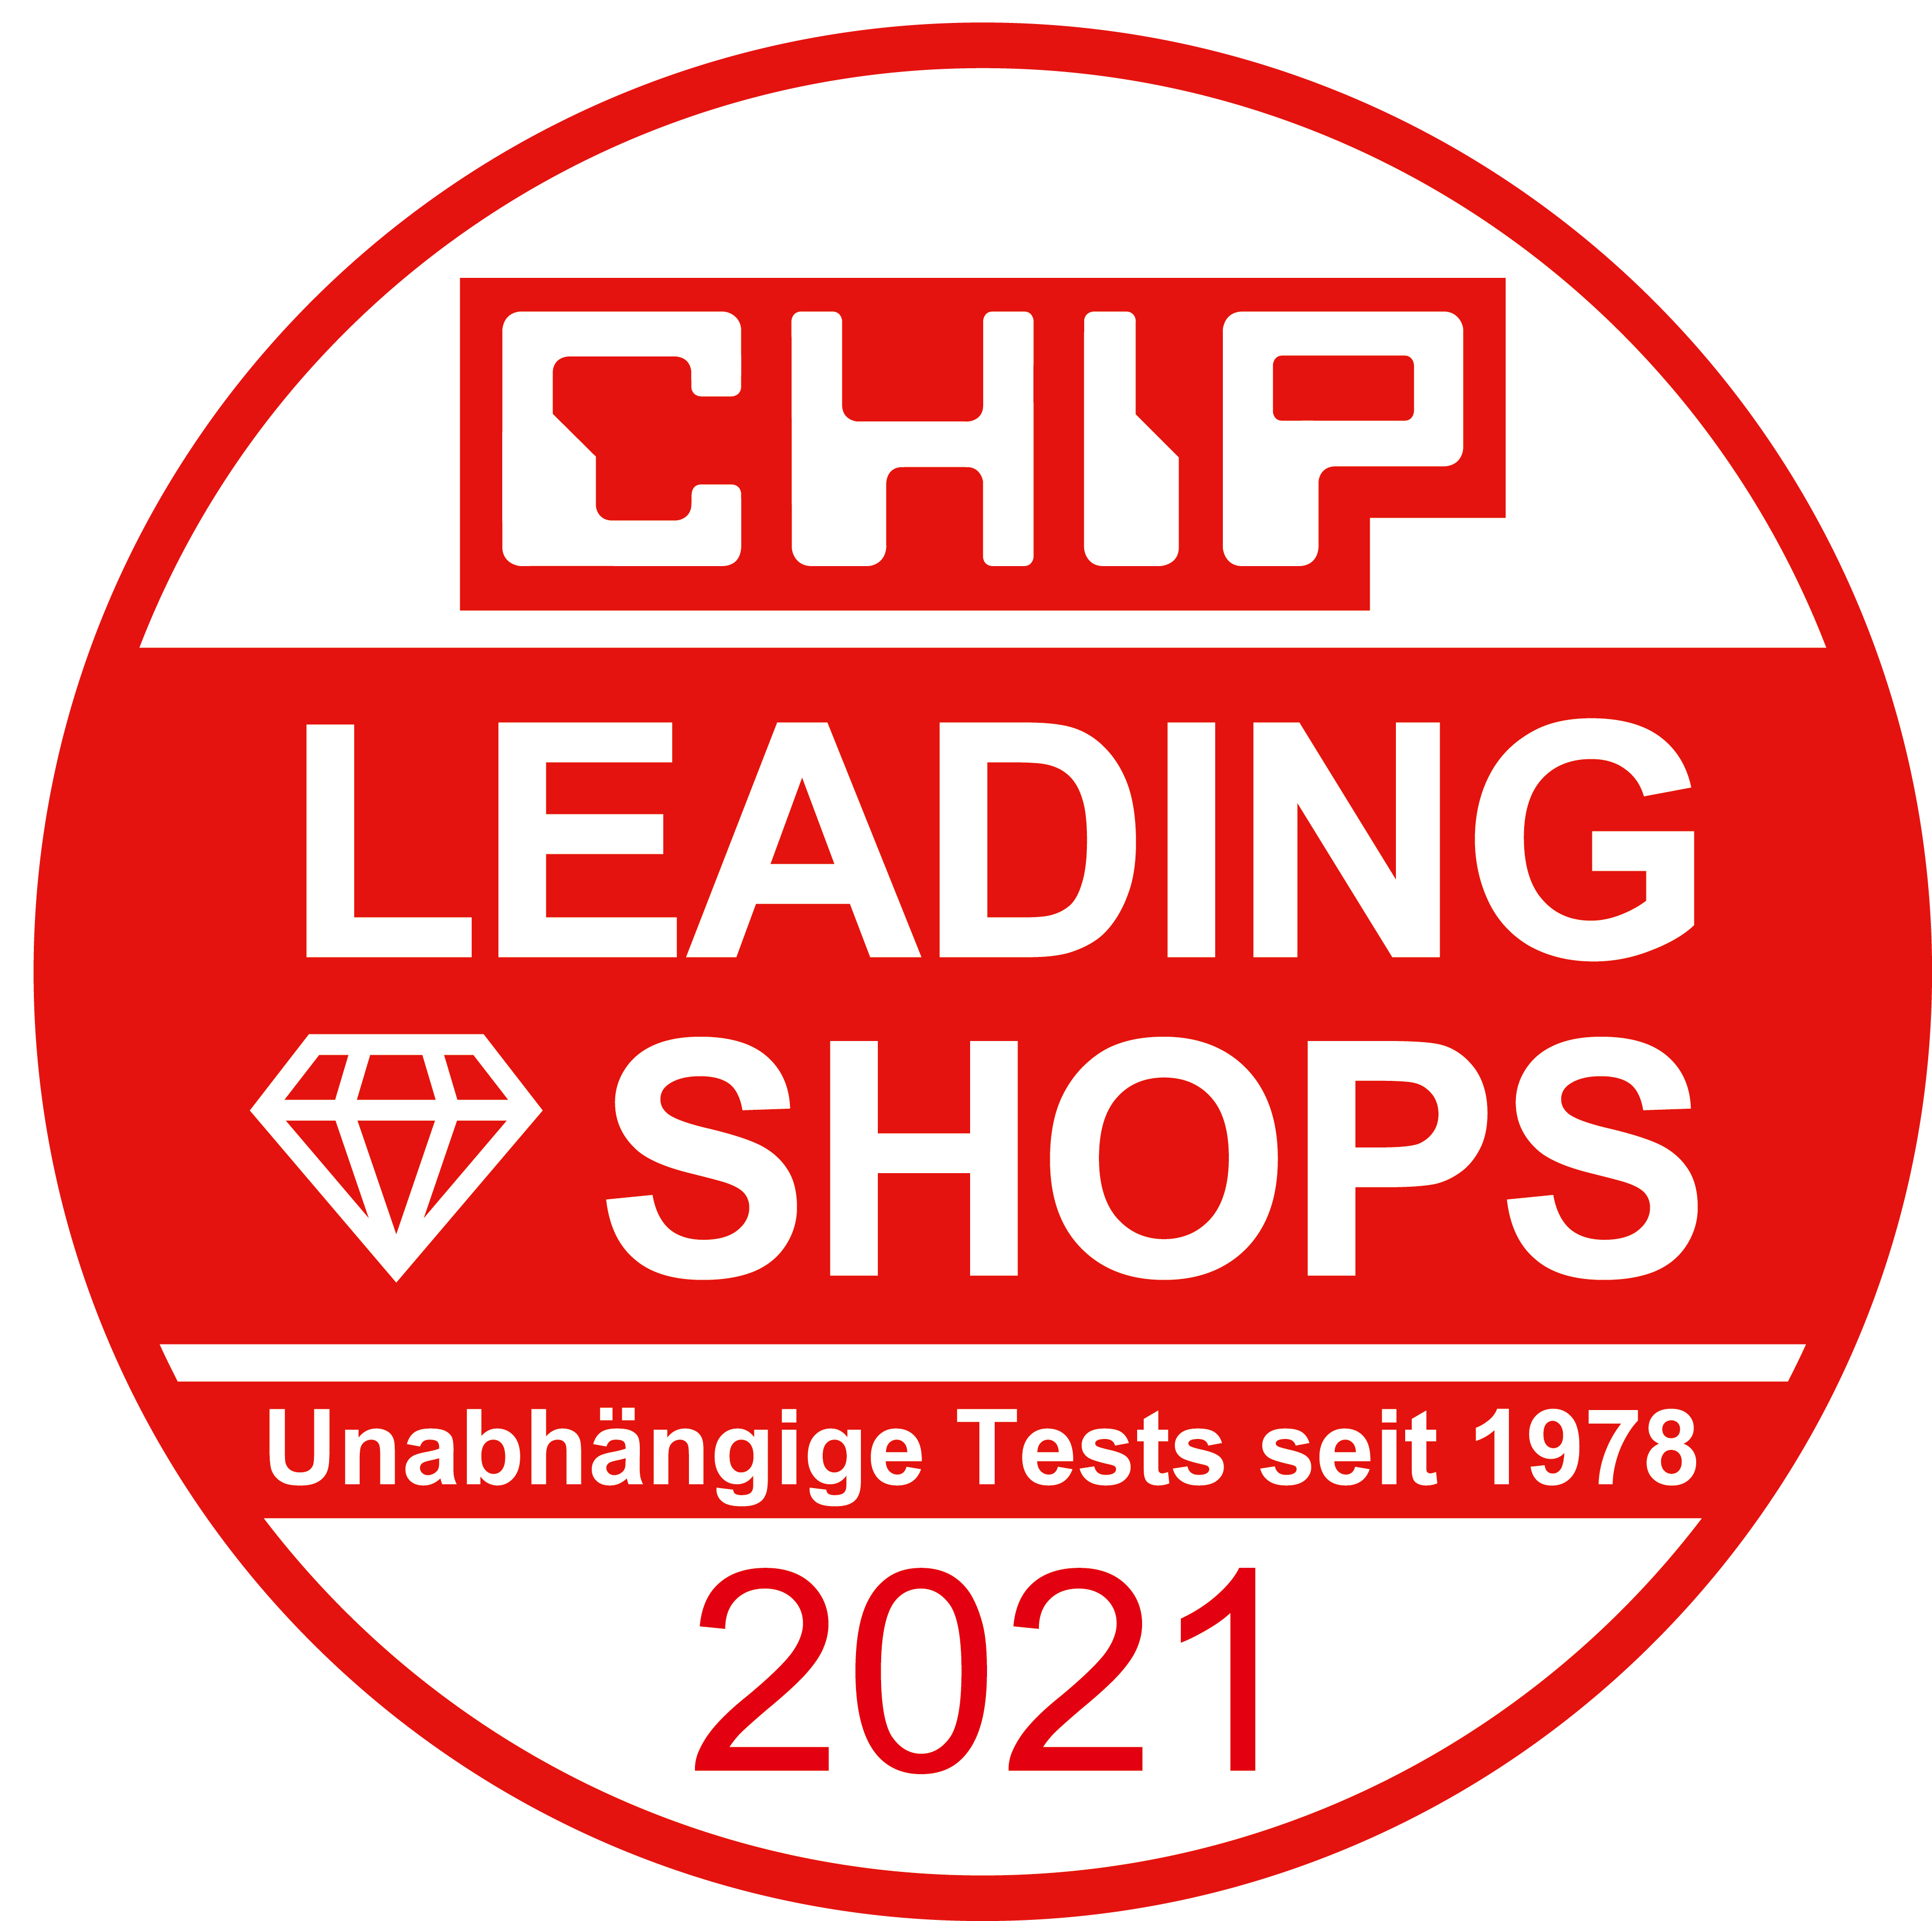 CHIP Leading Shops 2021